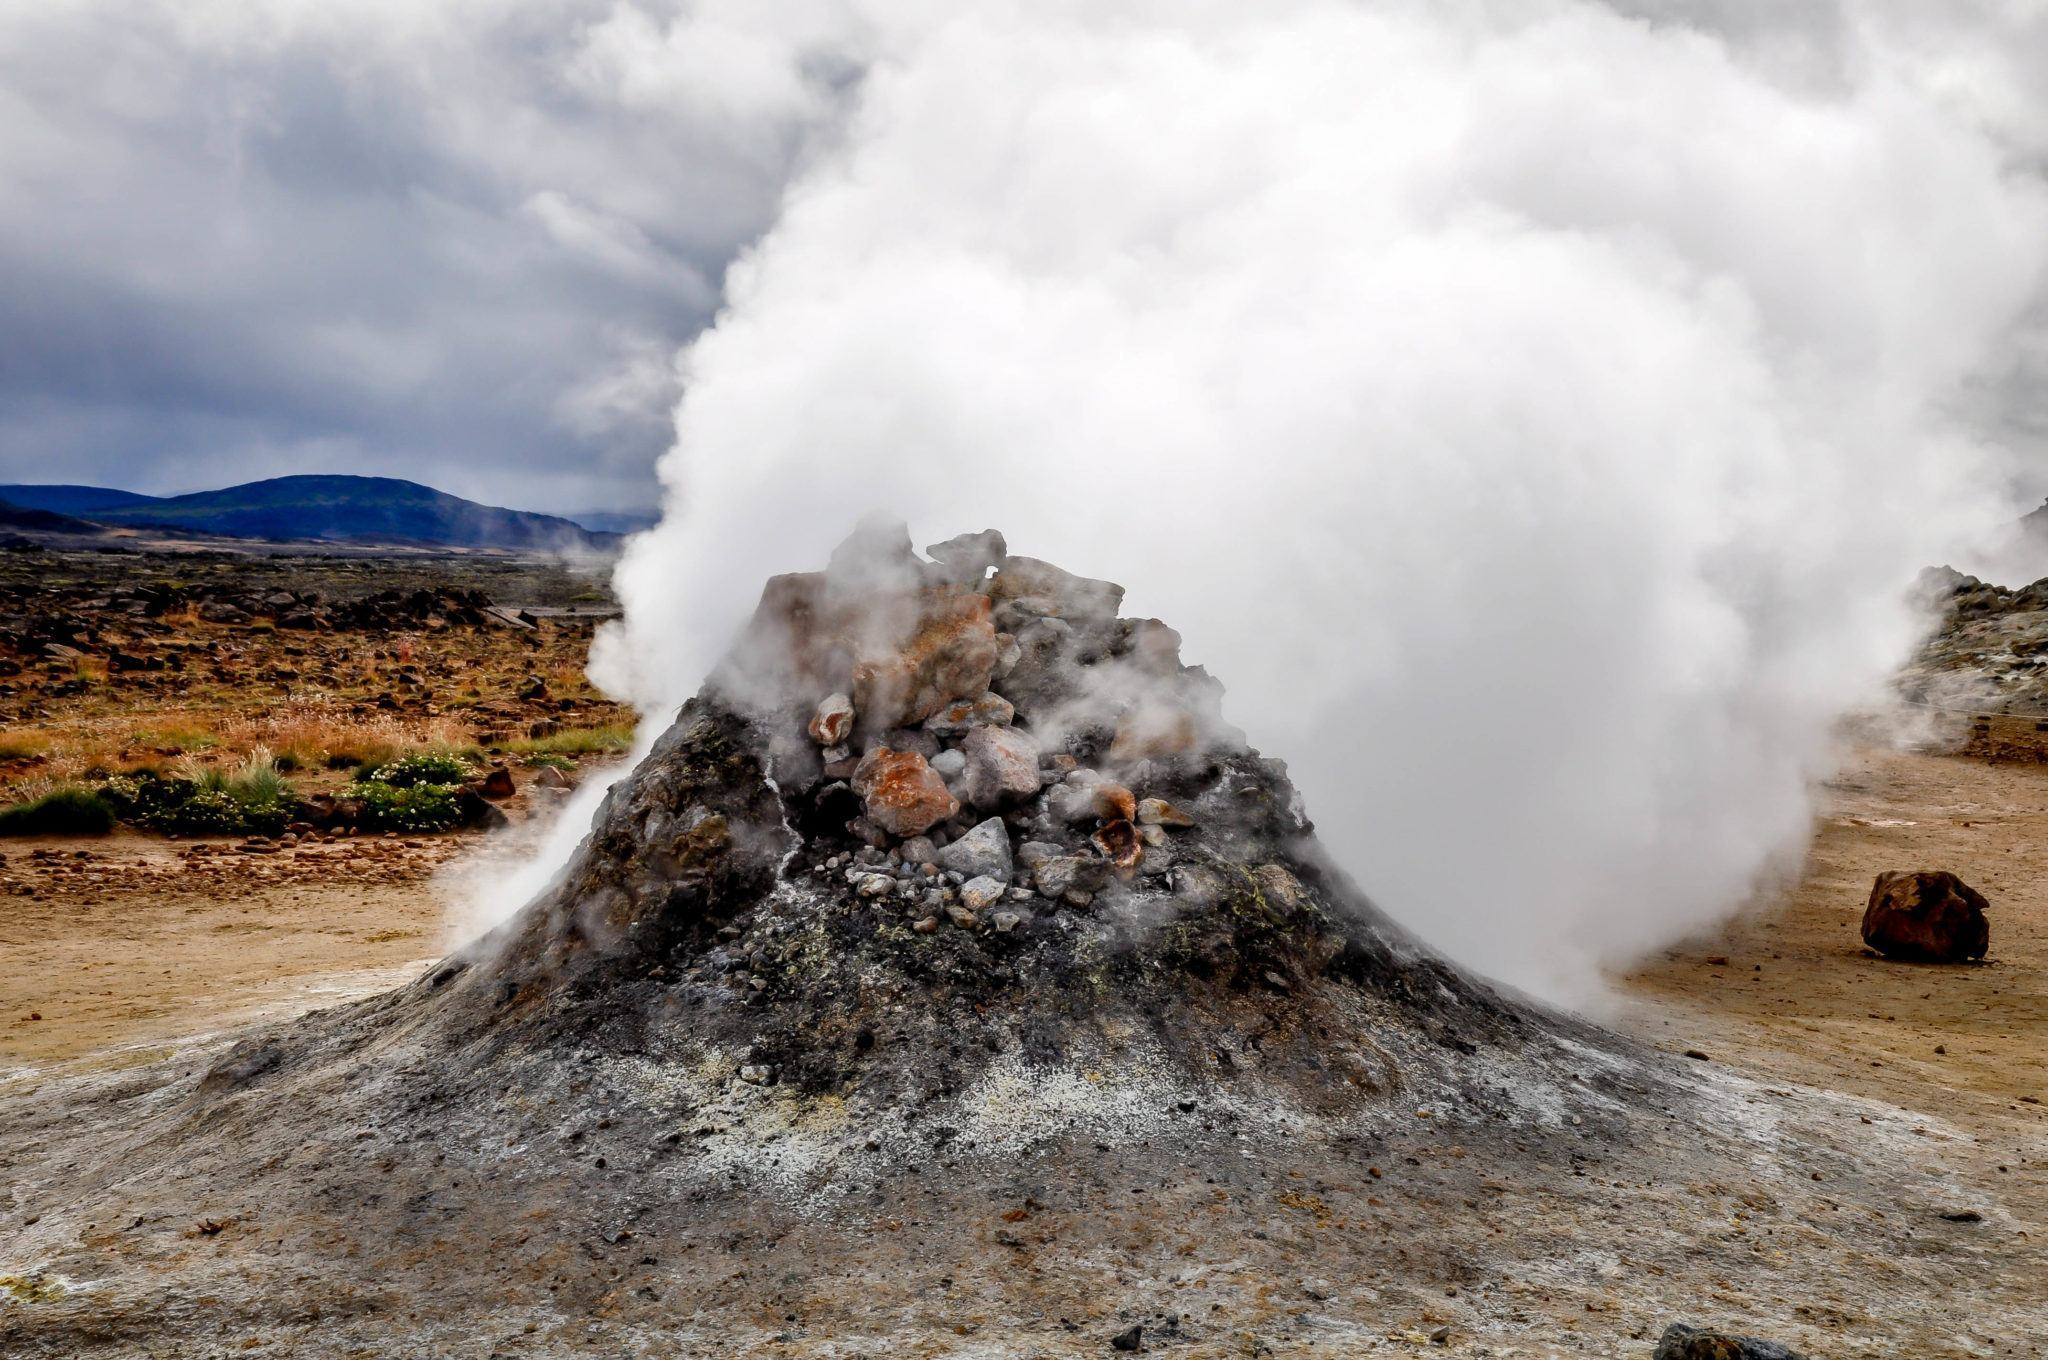 Sulfur gas steaming from a vent in the ground